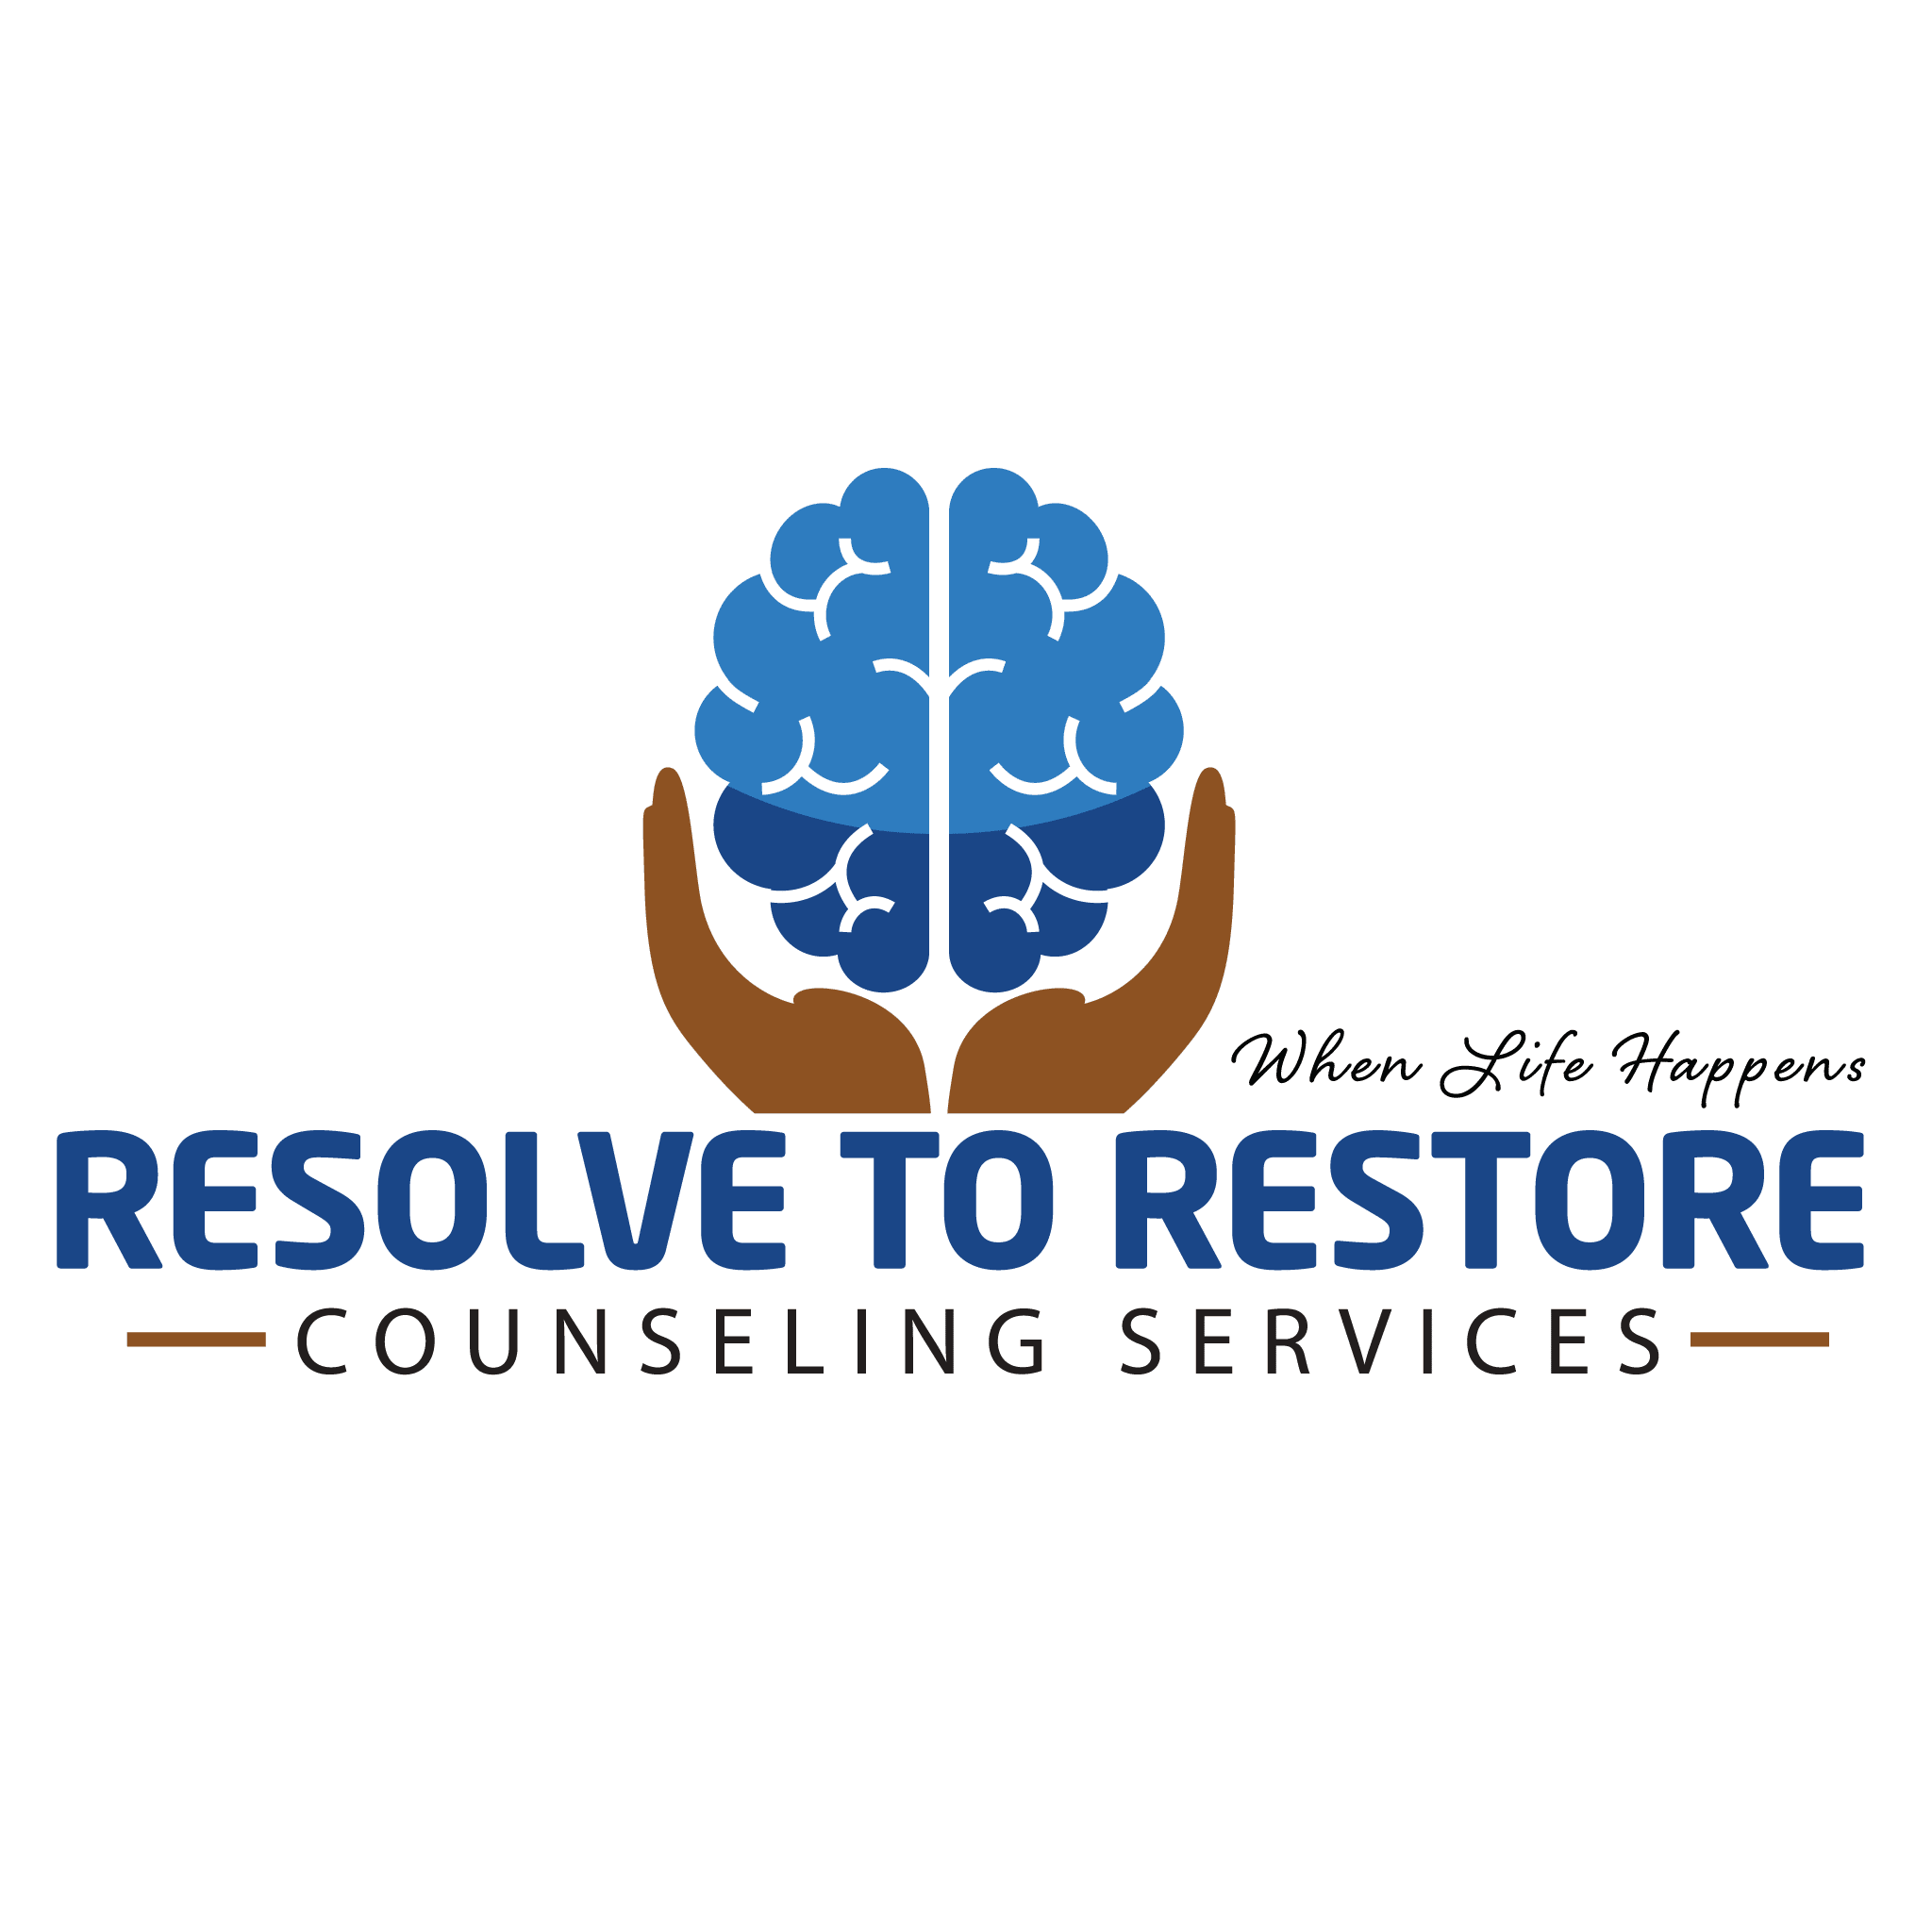 Resolve to Restore Counseling Services Logo